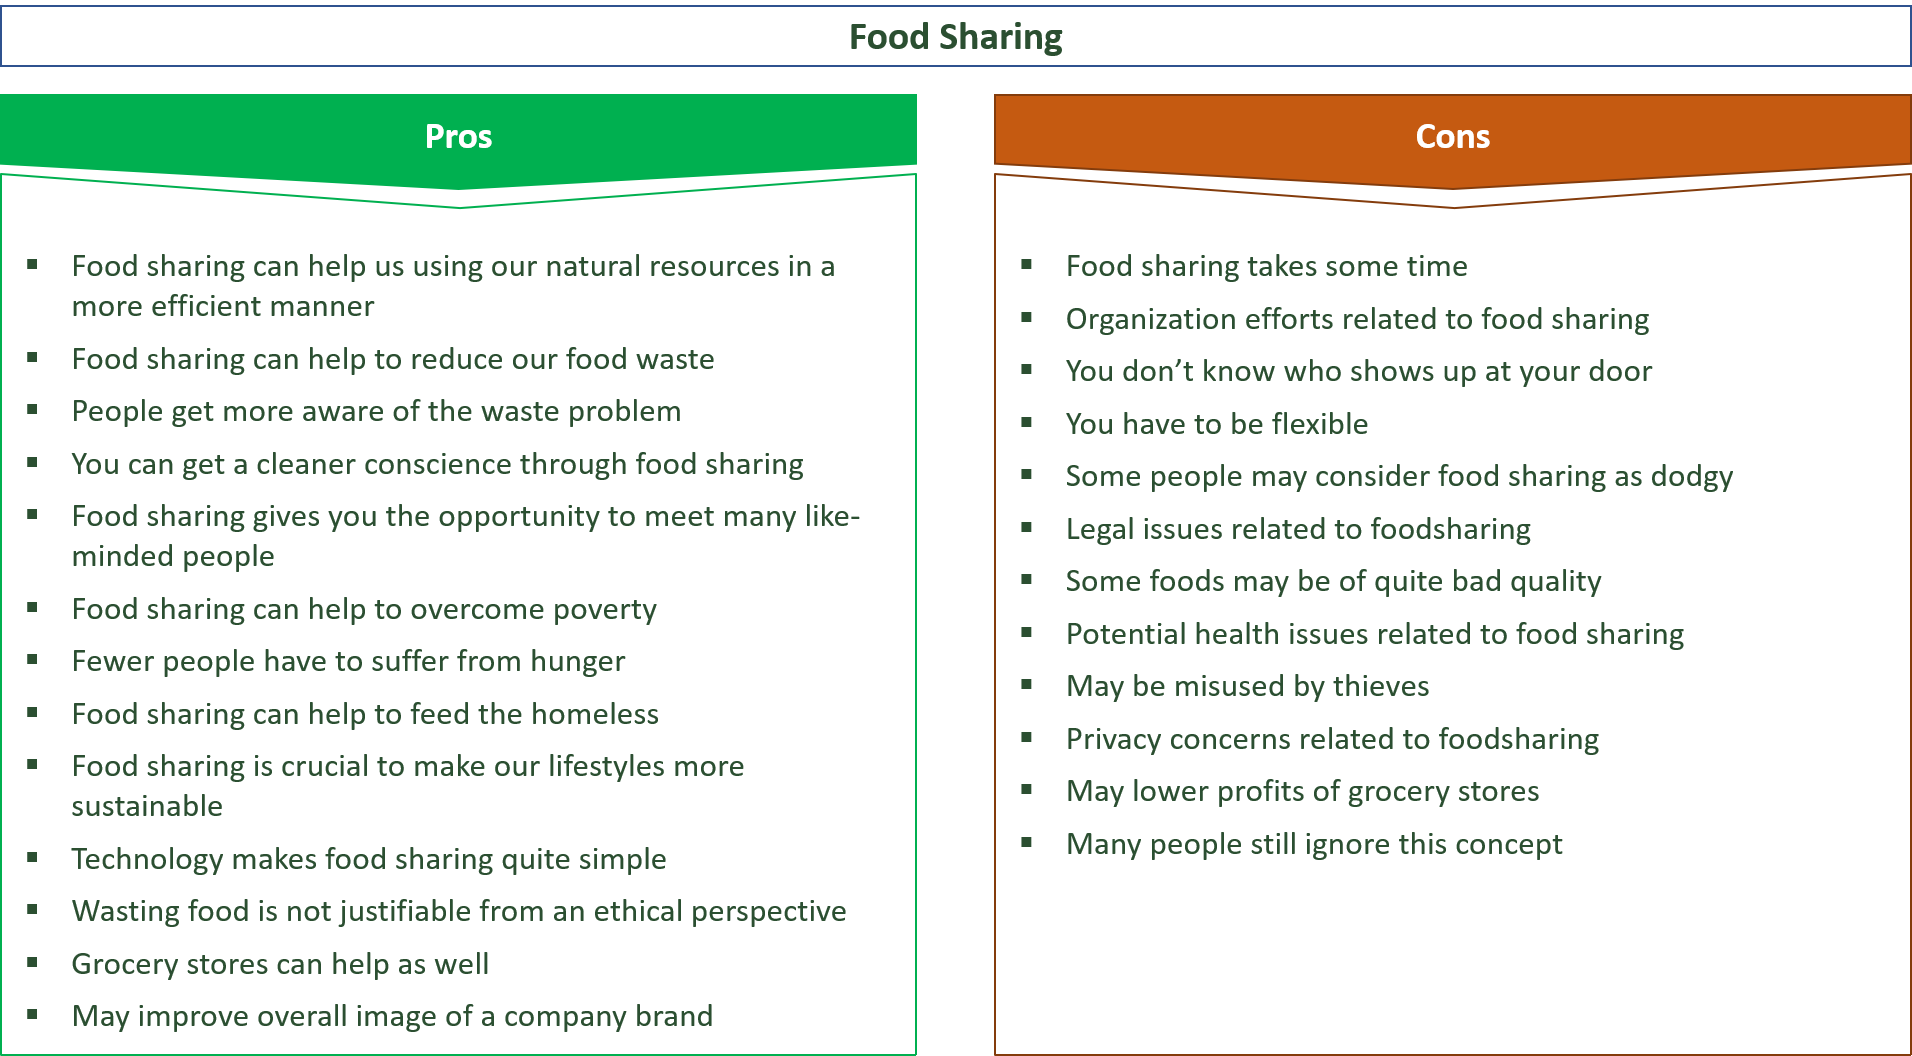 advantages and disadvantages of food sharing